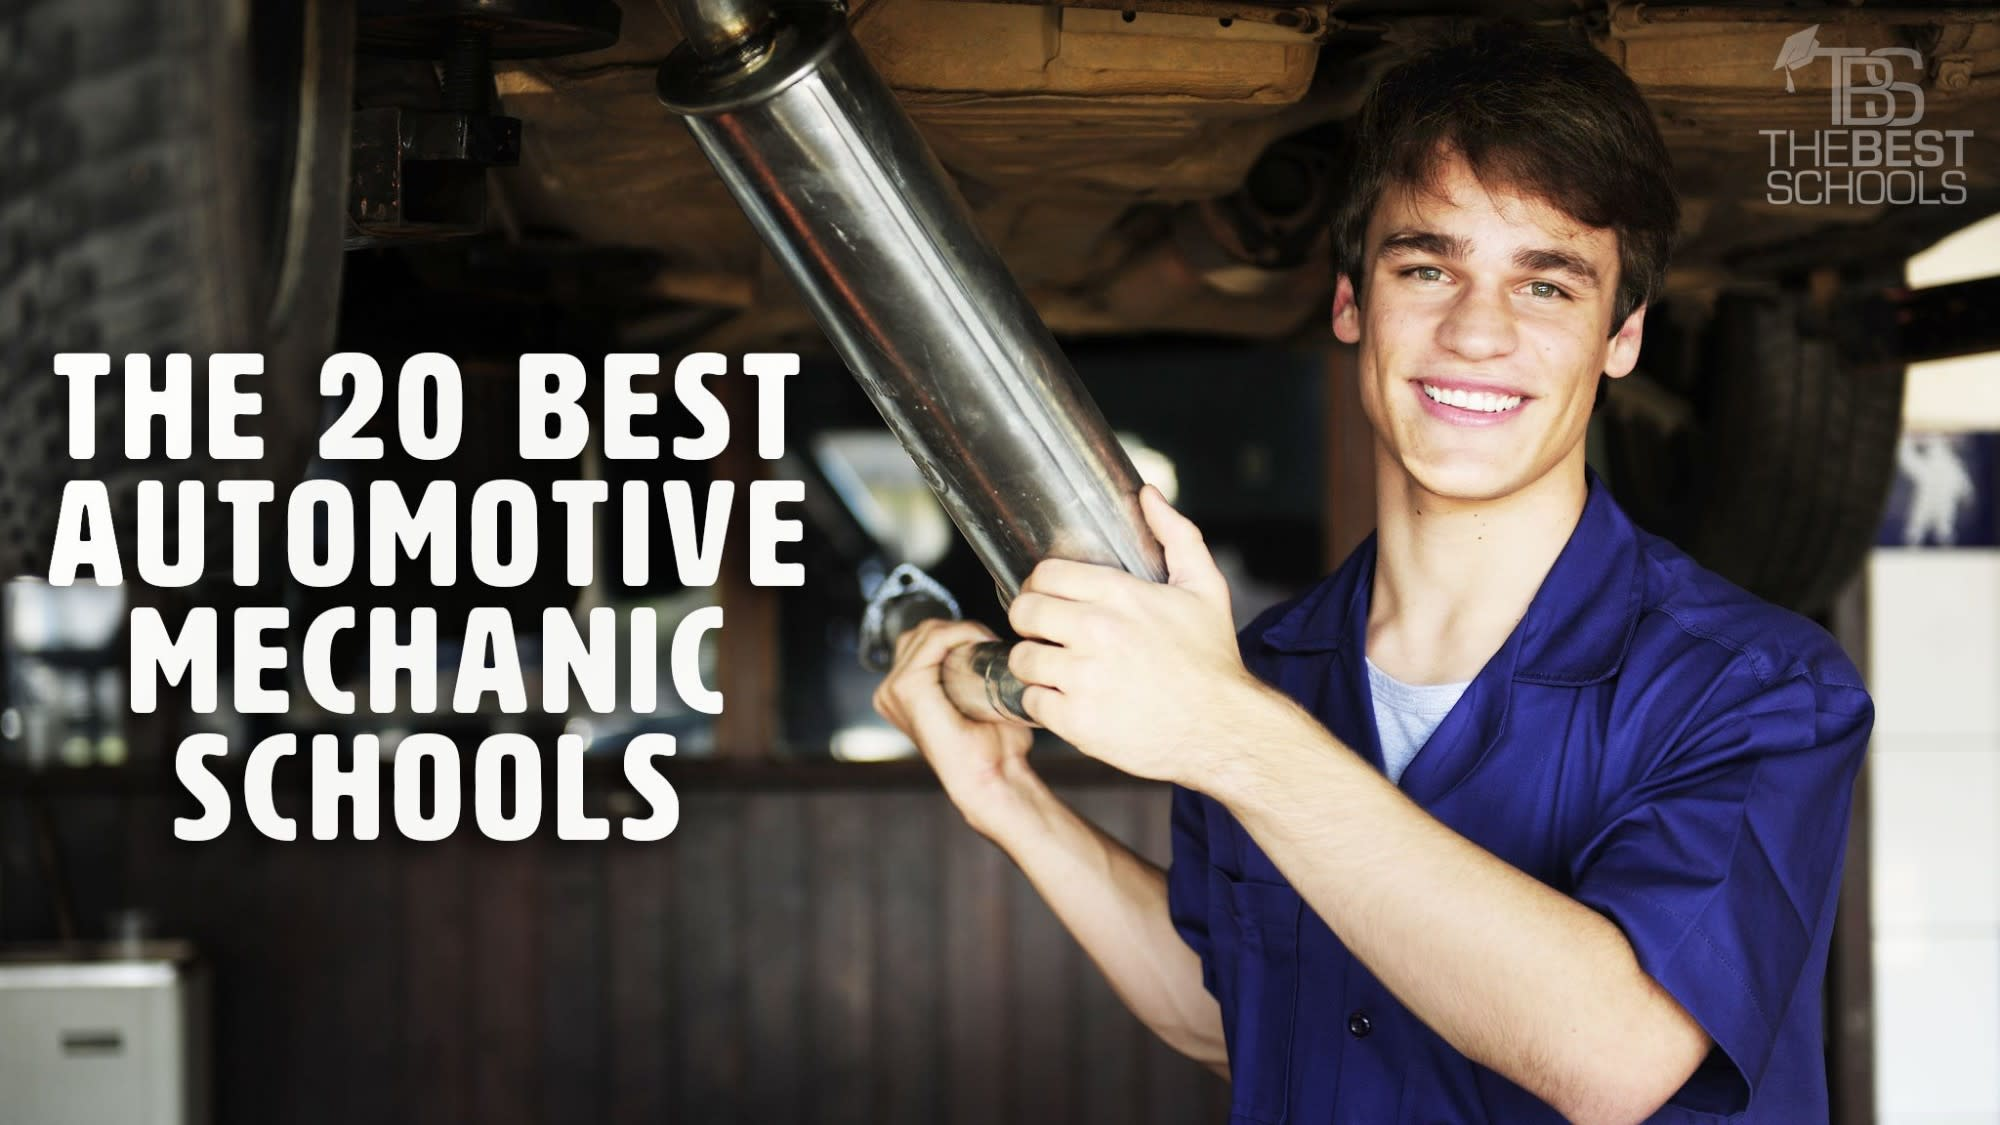 The 20 Best Auto Mechanic Schools | TheBestSchools org